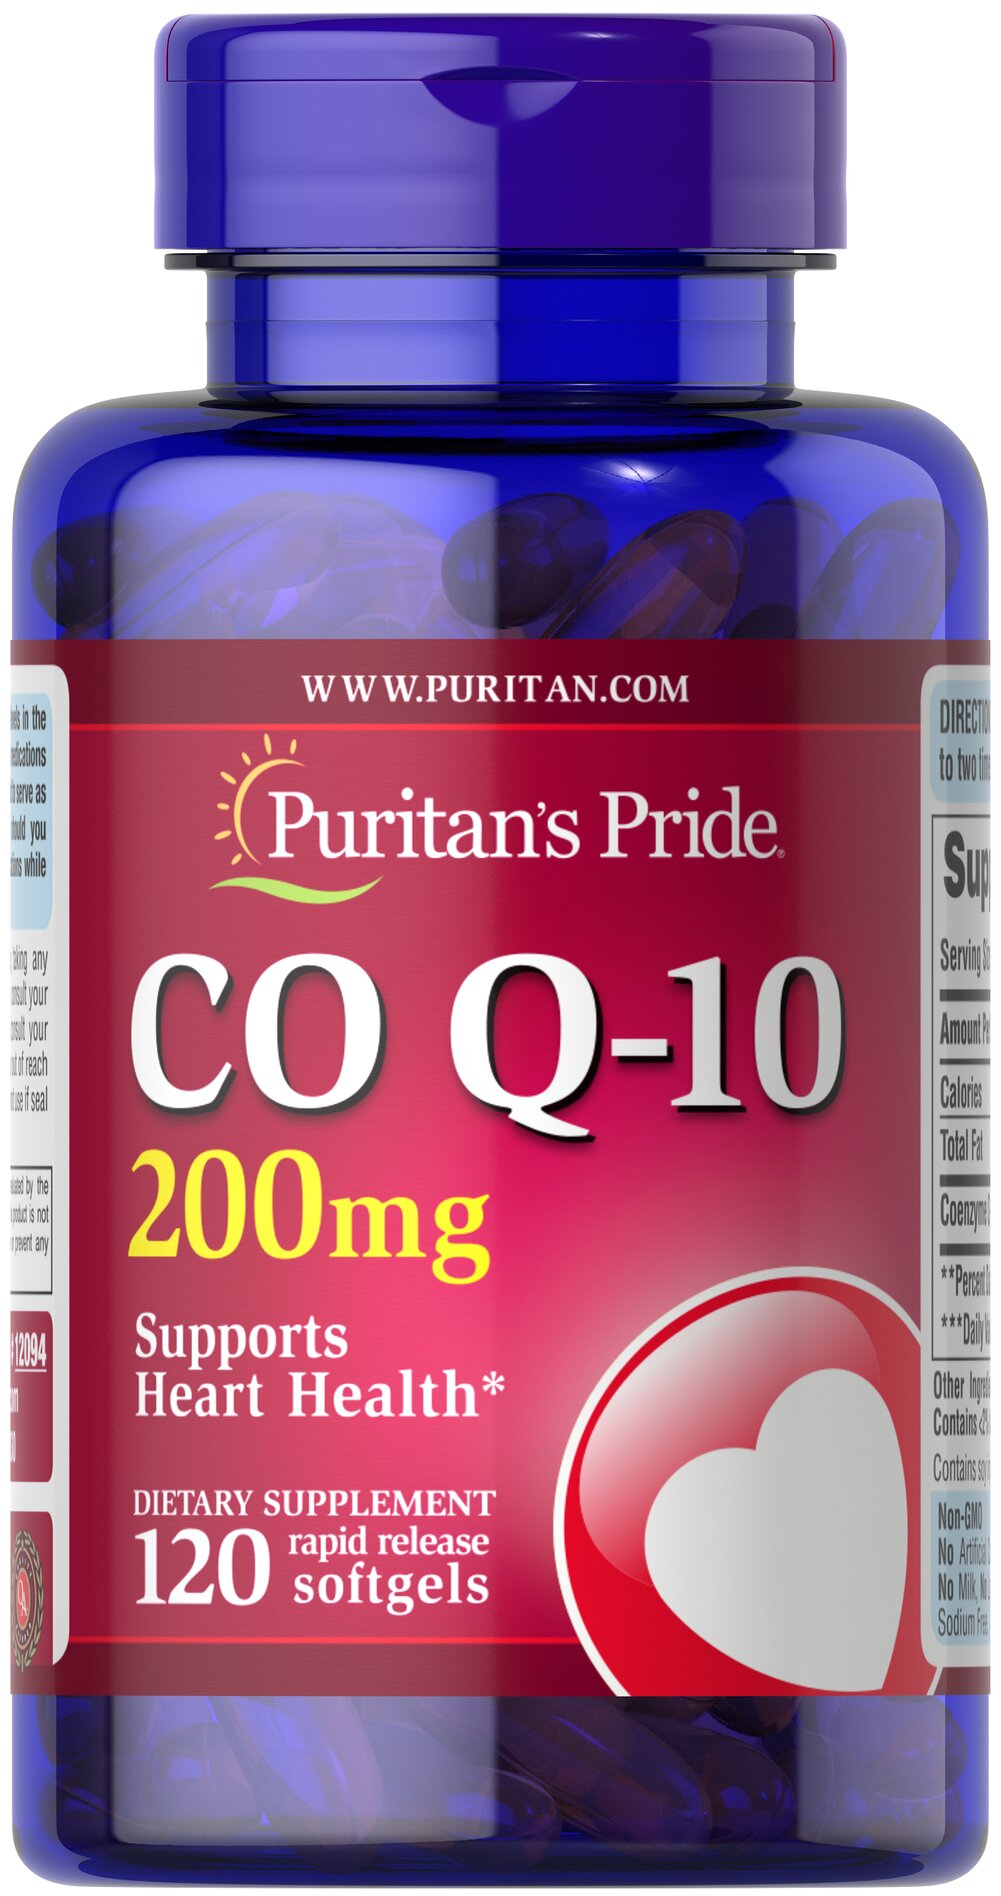 Co Q-10 200 mg <p>Puritan's Pride Q-Sorb™ Co Q-10 (coq10) provides antioxidant support for your heart and ensures potency and purity.**</p><p>Our Q-Sorb™ Co Q-10 is hermetically sealed in rapid release softgels to provide superior absorption</p><p>Contributes to your heart and cardiovascular wellness**</p><p>Helps support blood pressure levels already within a normal range**</p><p>Promotes energy production within your heart, brain, and muscl